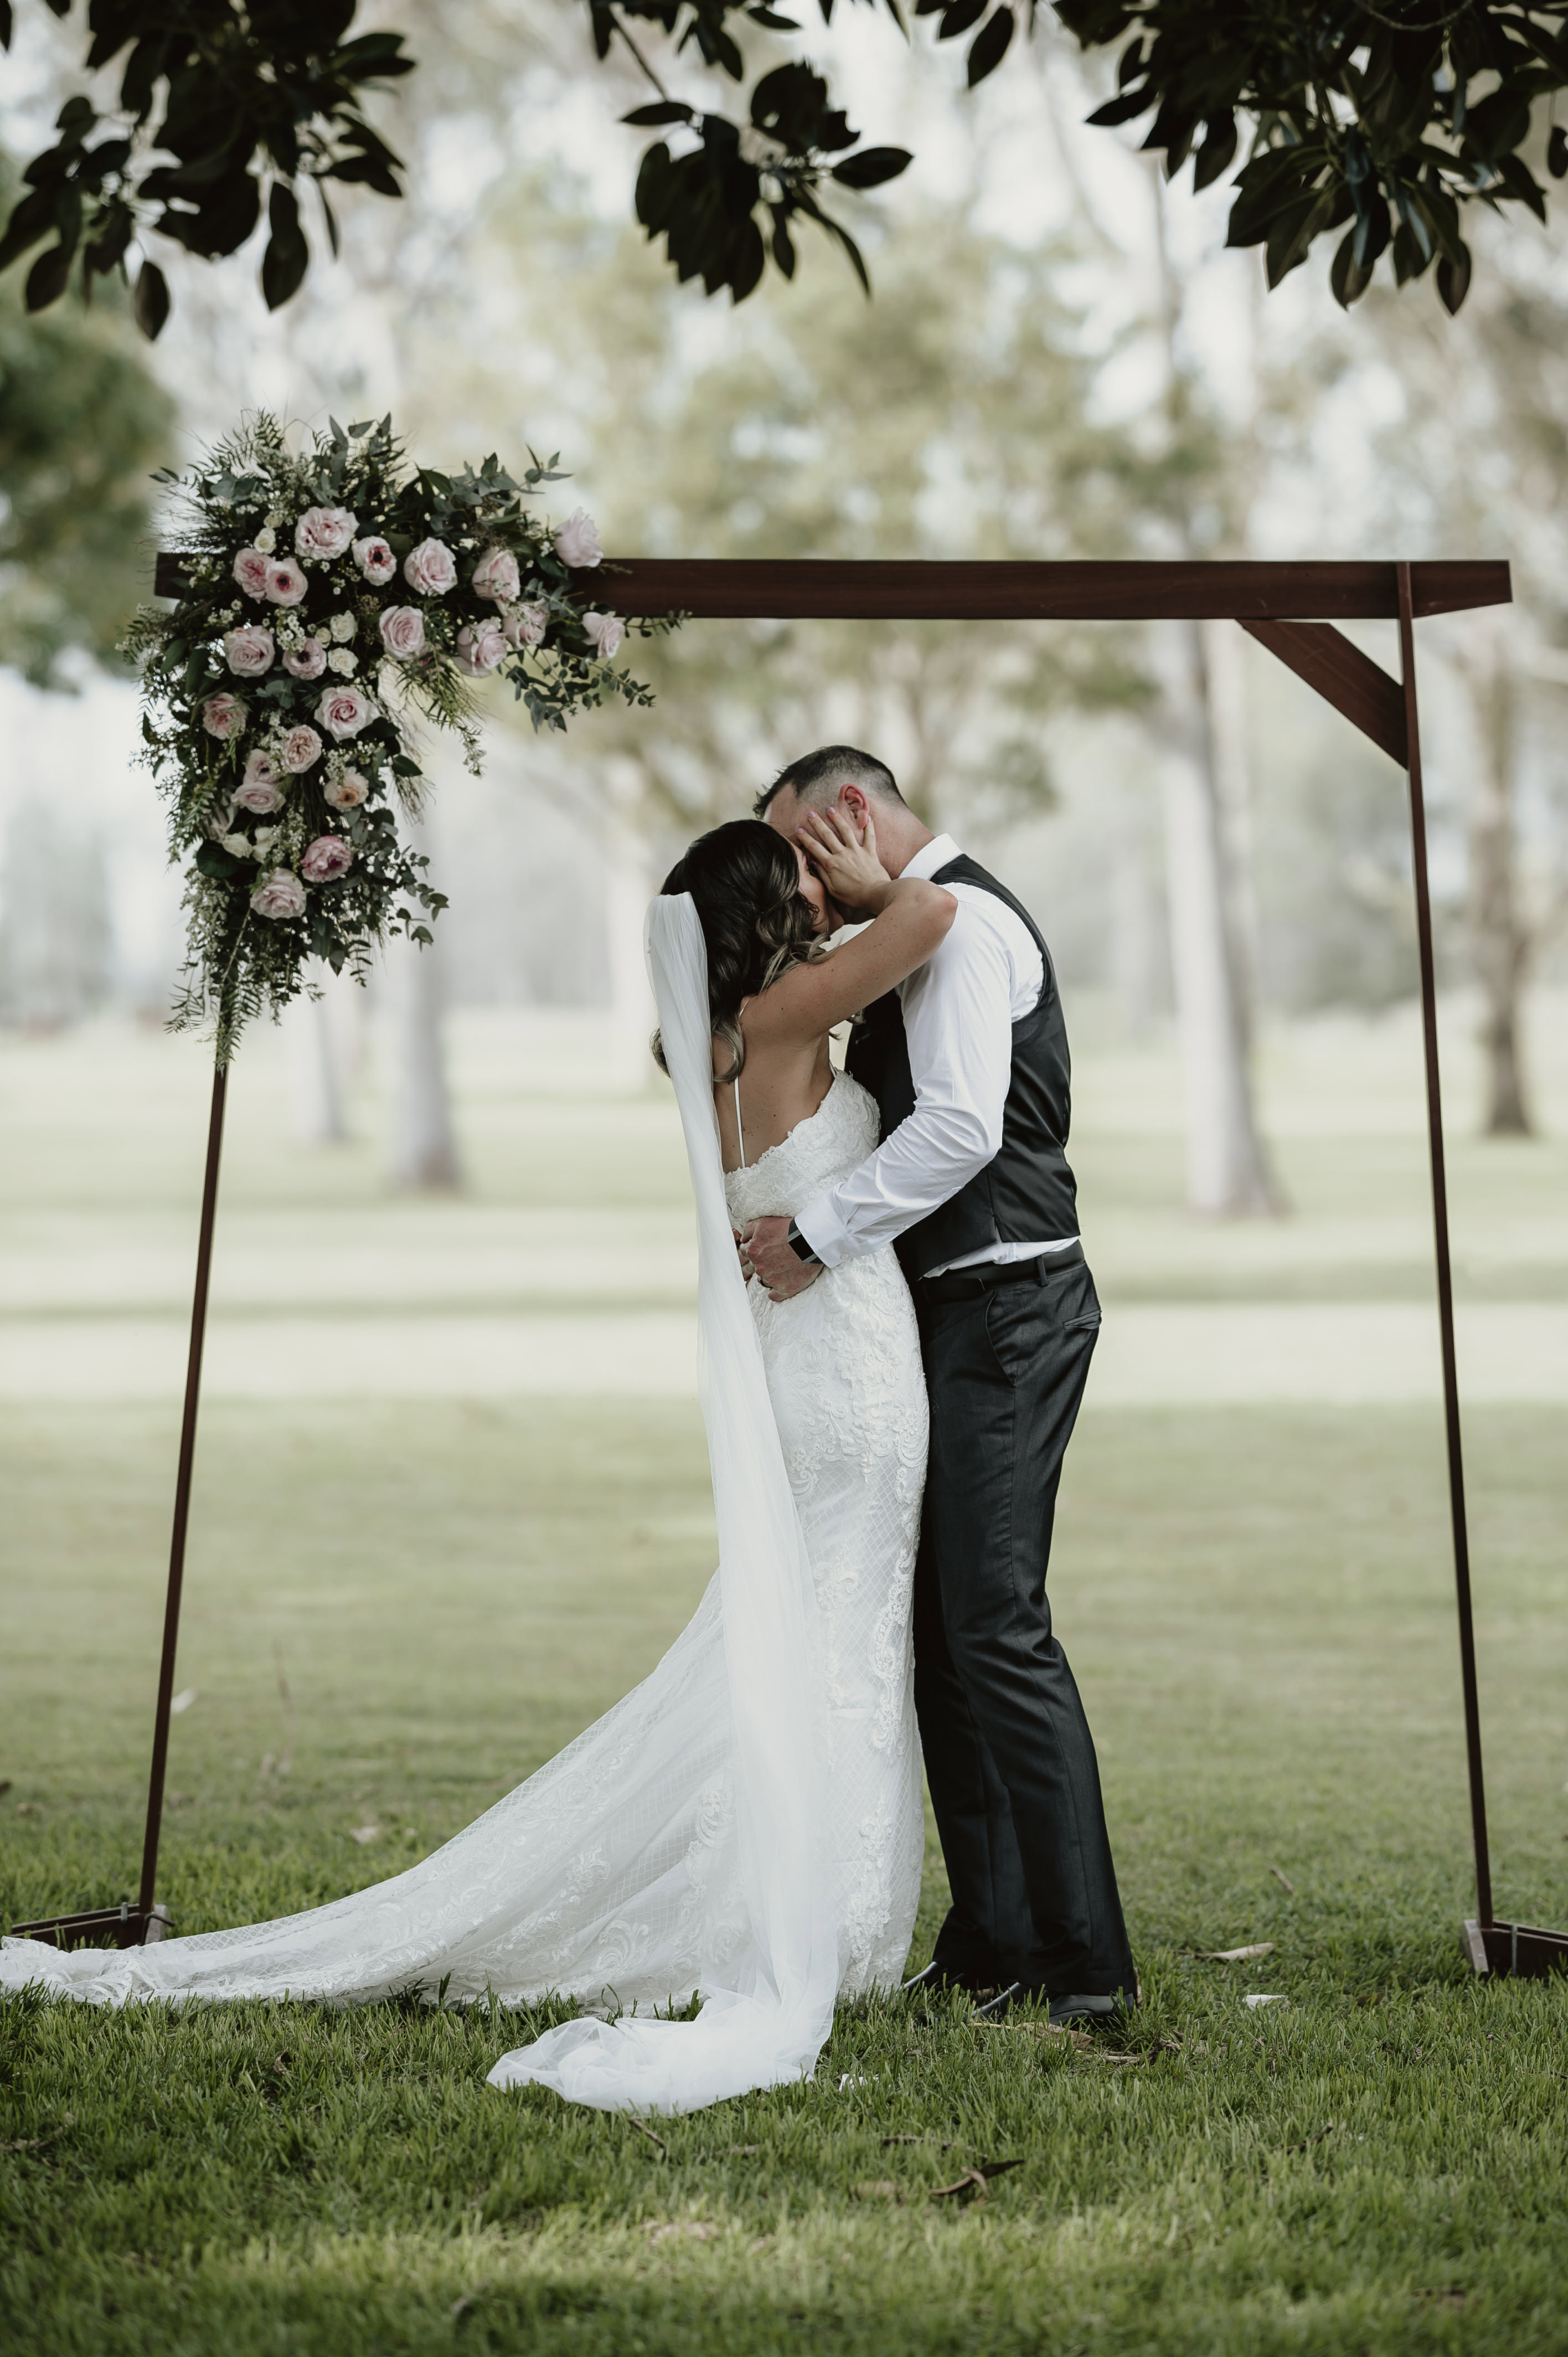 Bride and groom kissing under floral arbor